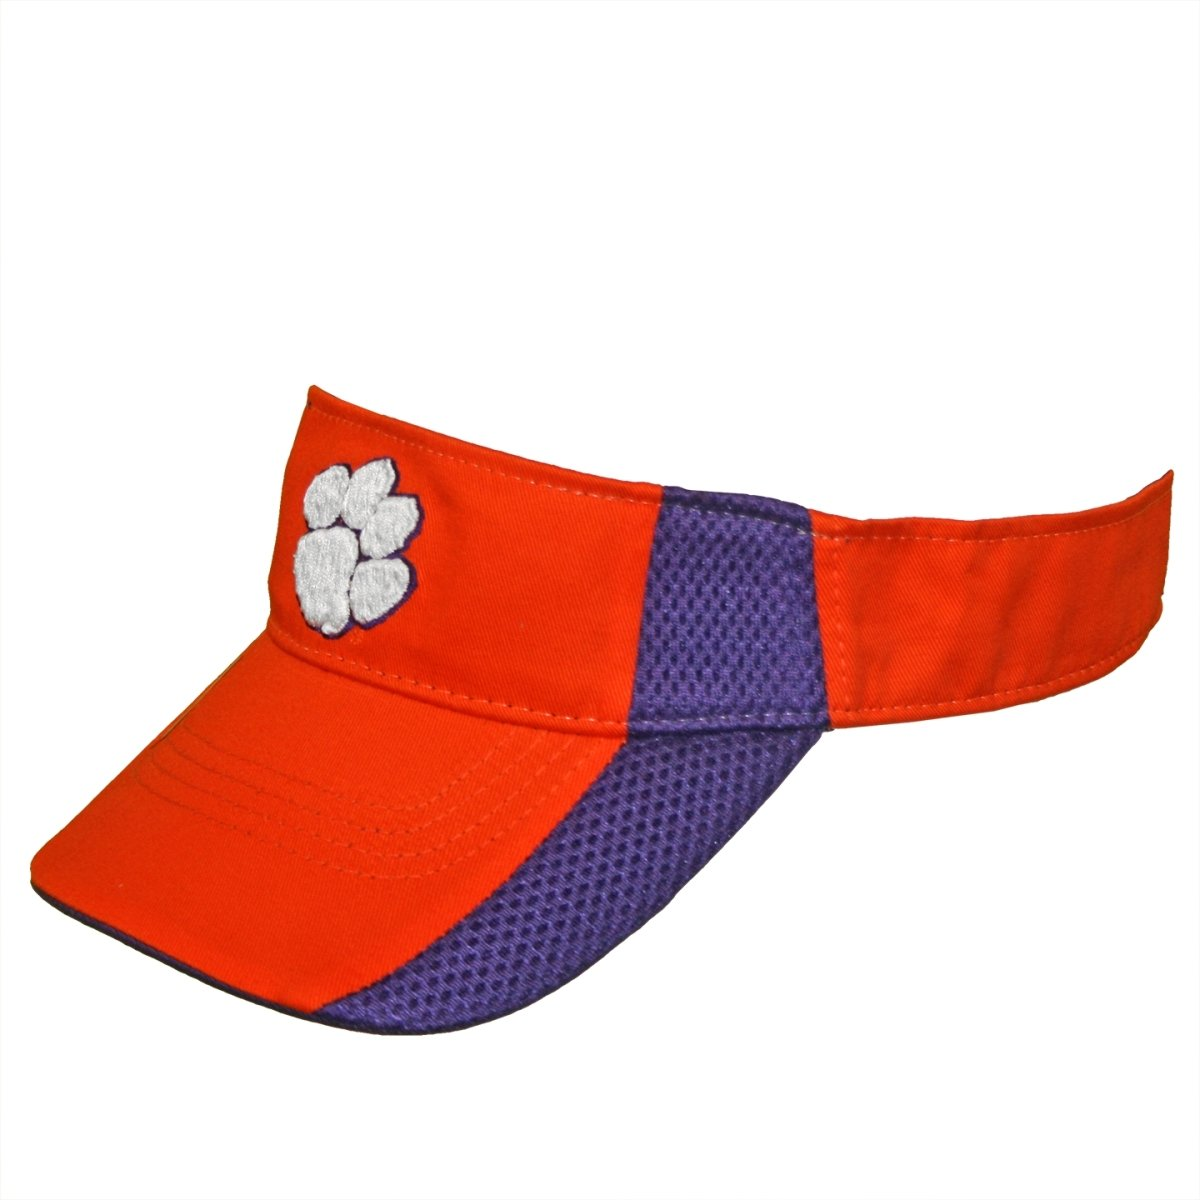 Interception 2-Tone Visor With White Paw - Mr. Knickerbocker